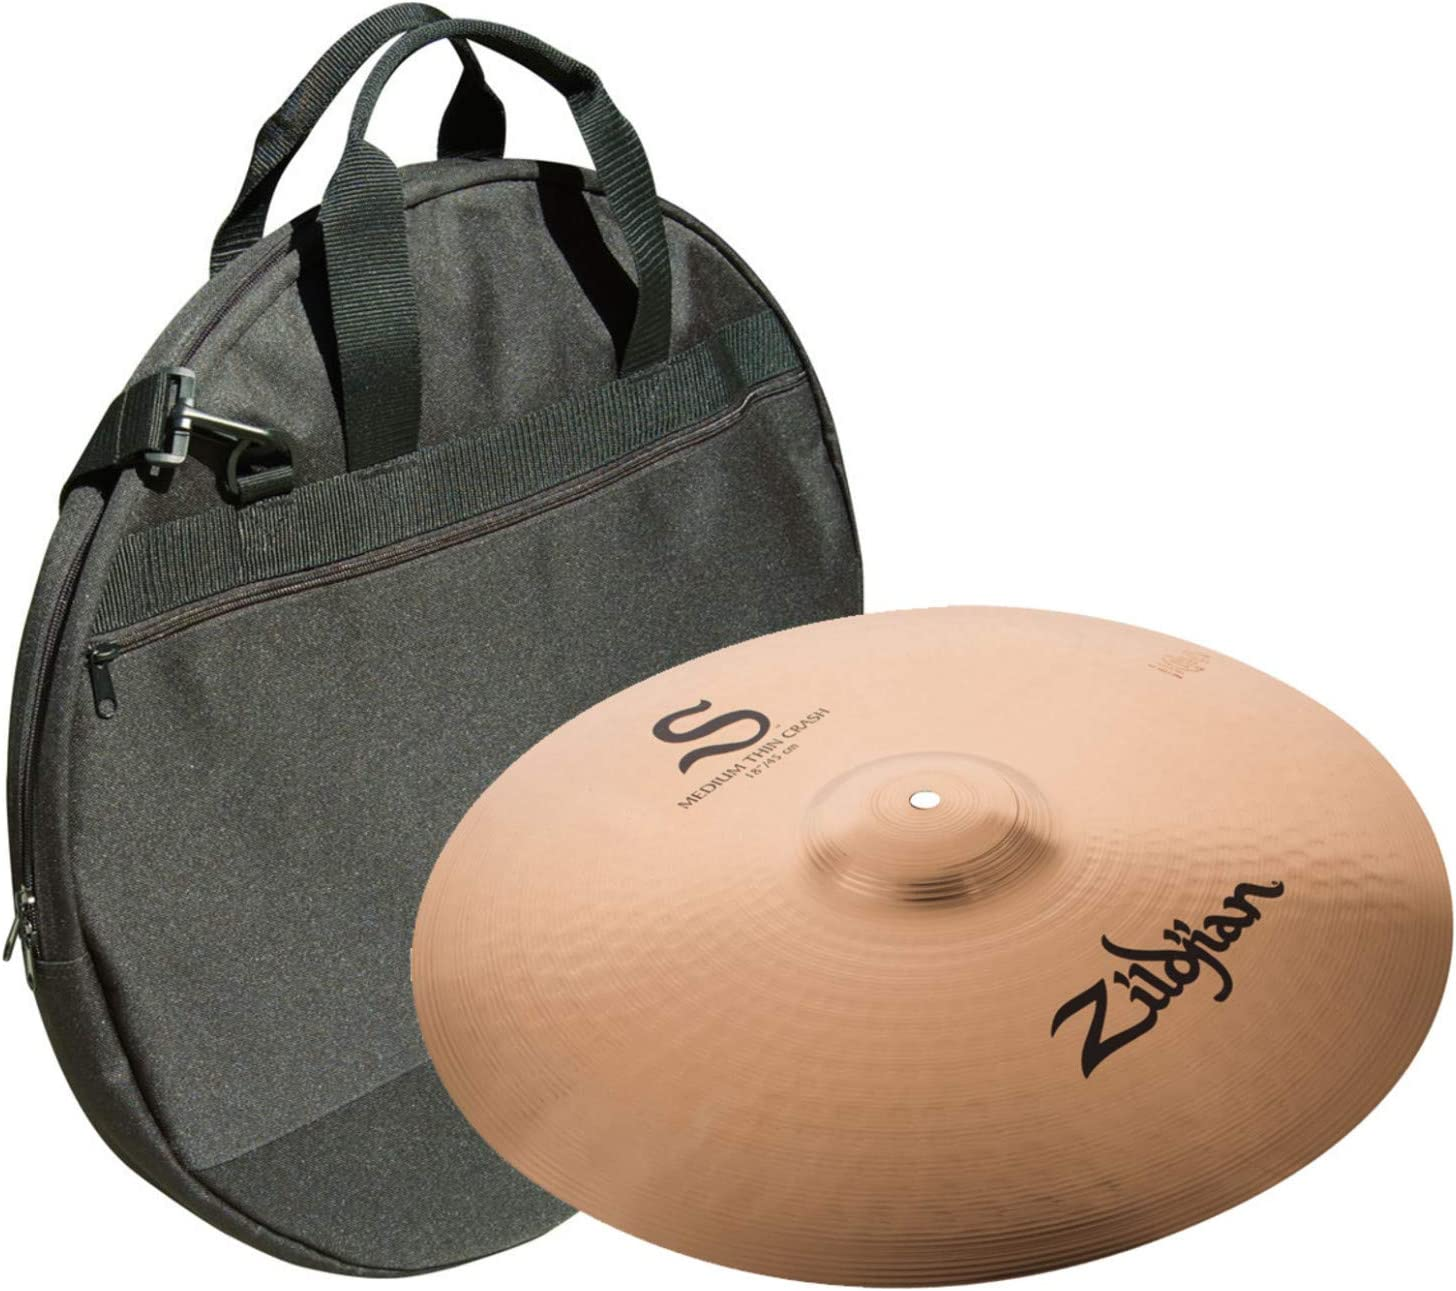 Avedis Zildjian Company Zildjian 18 S Medium Thin Crash Cymbal